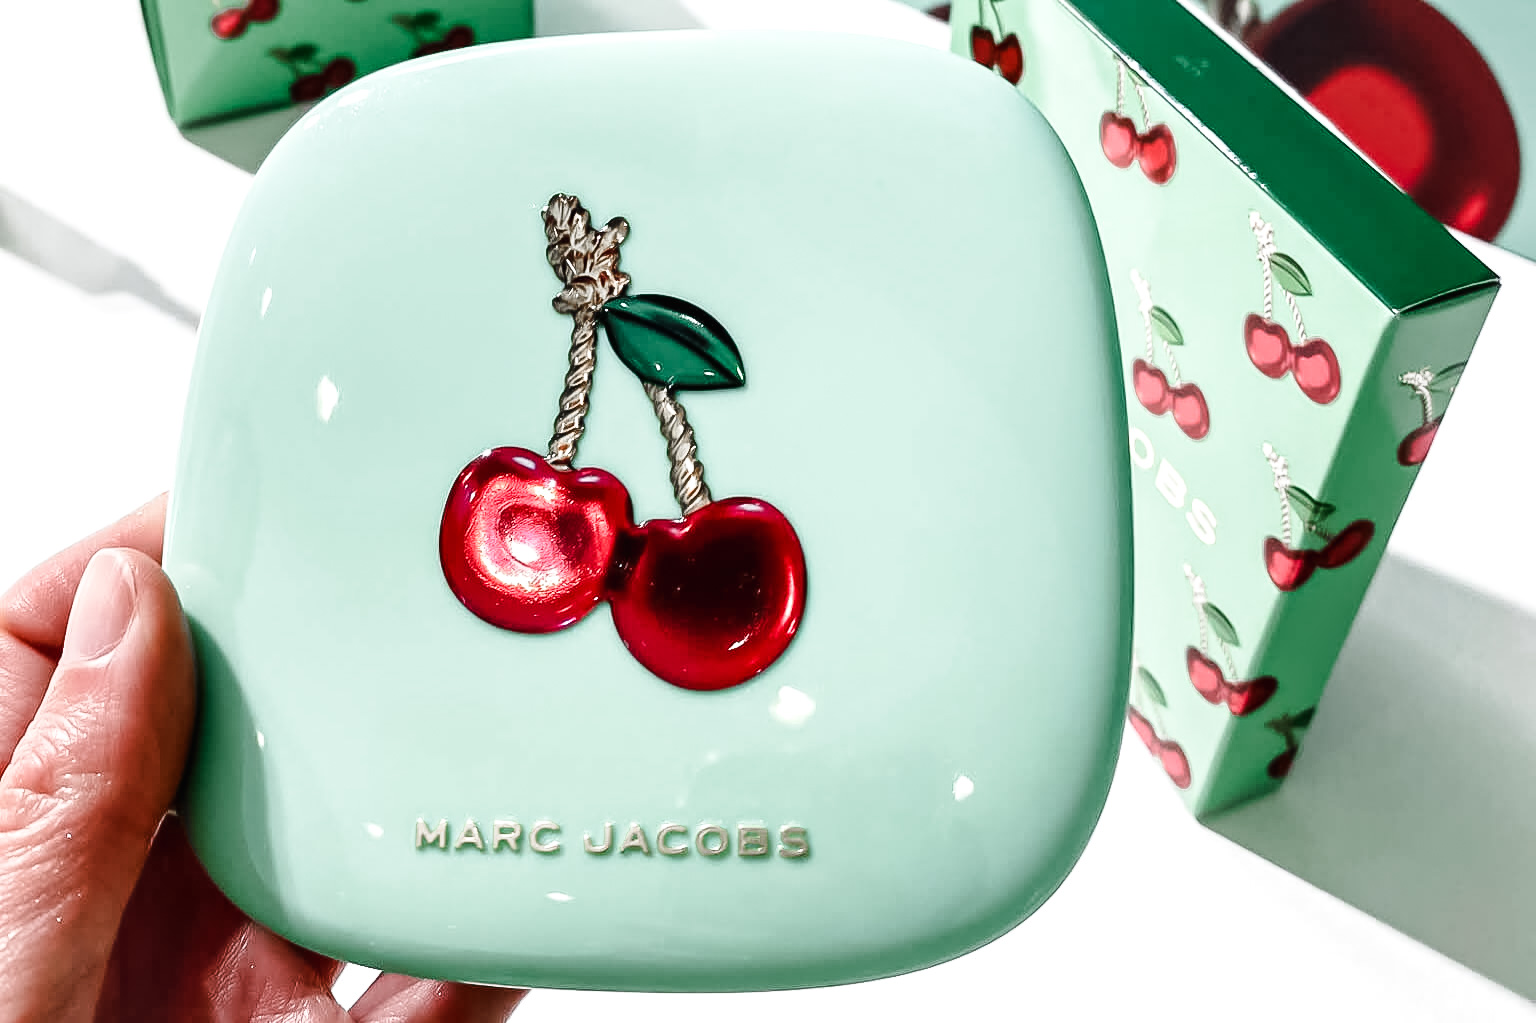 Marc Jacobs Merry Cherry Collection Noel 2020